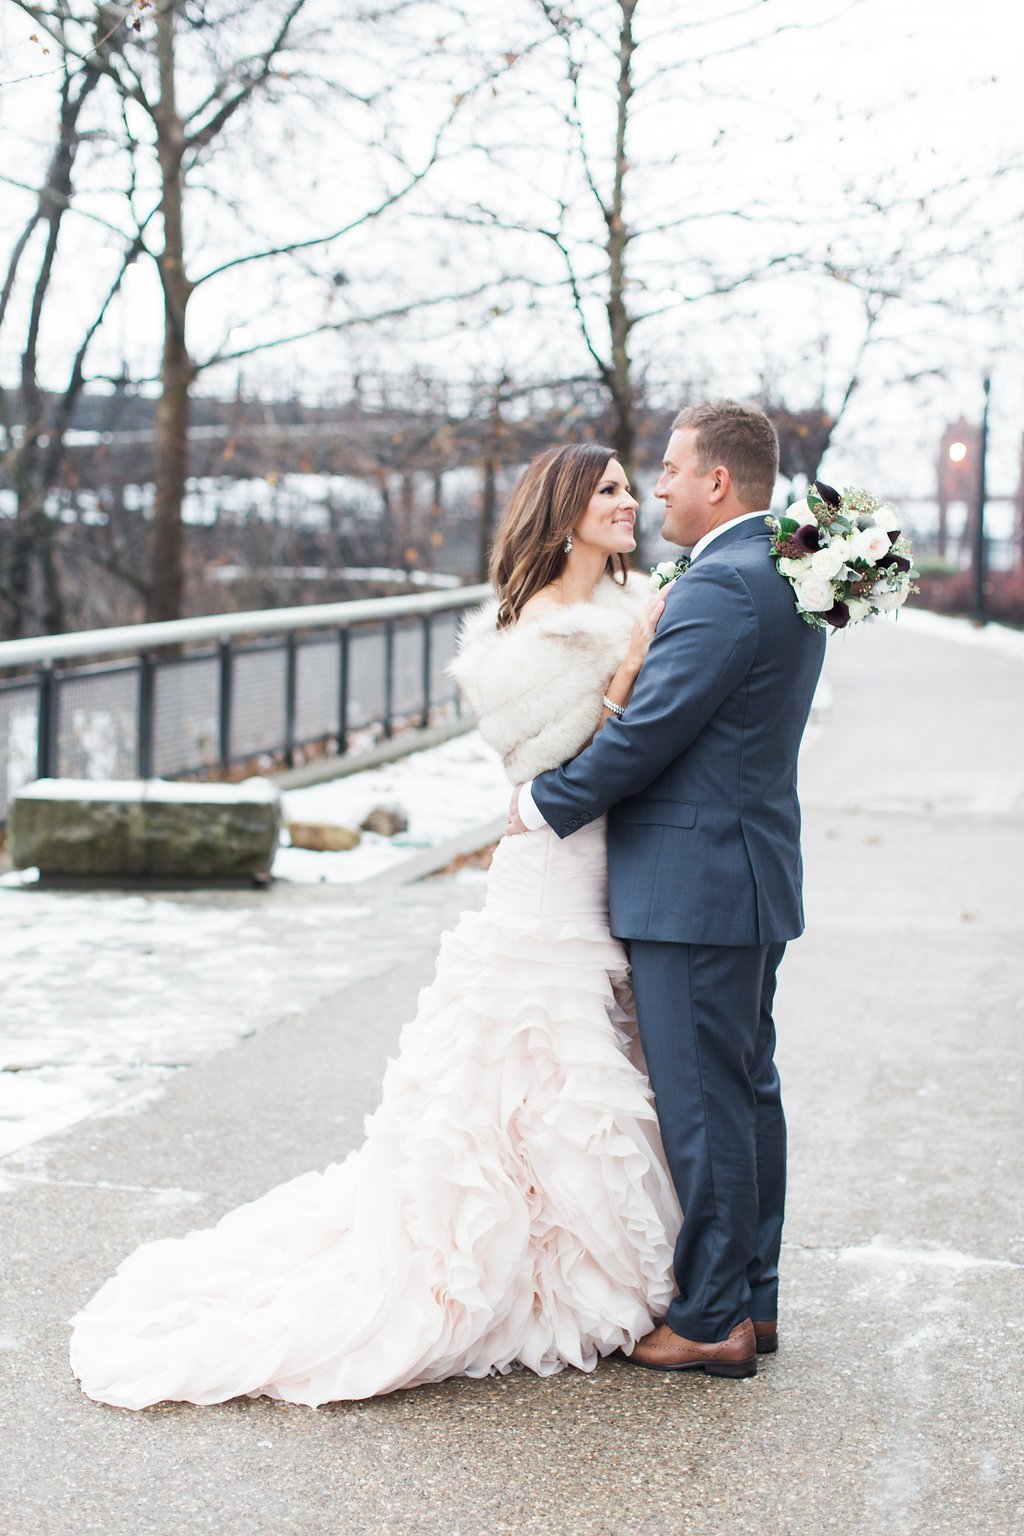 Bride wearing a blush pink wedding gown and fur shawl groom in navy blue suit - J Verno Studios Winter Wedding